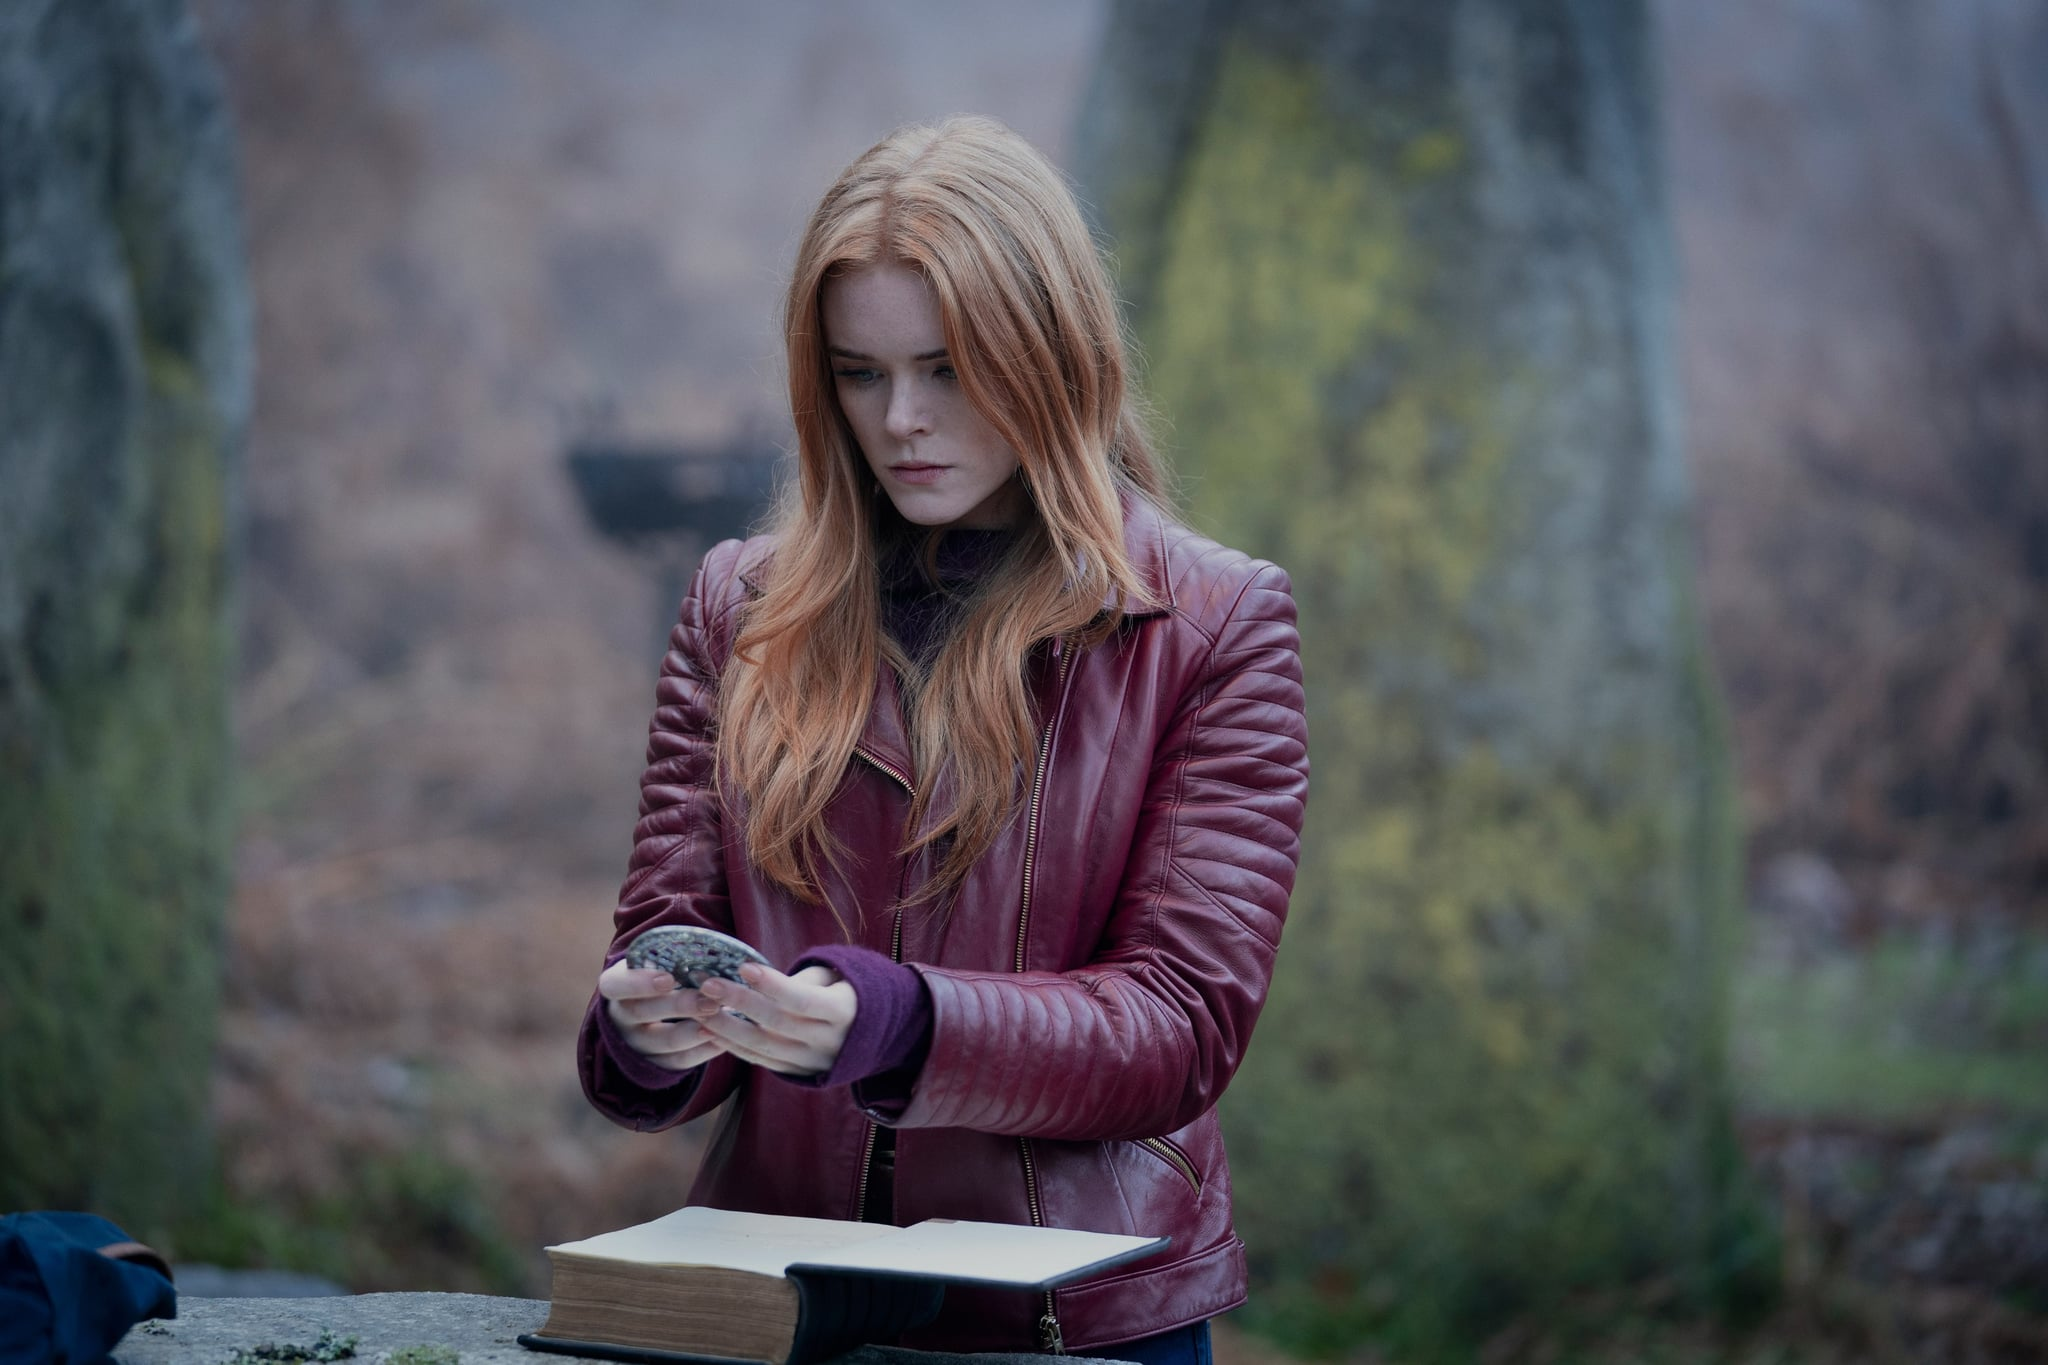 FATE: THE WINX SAGA, Abigail Cowen, 'Wither Into the Truth', (Season 1, ep. 105, aired Jan. 22, 2021). photo: Jonathan Hession / Netflix / Courtesy Everett Collection